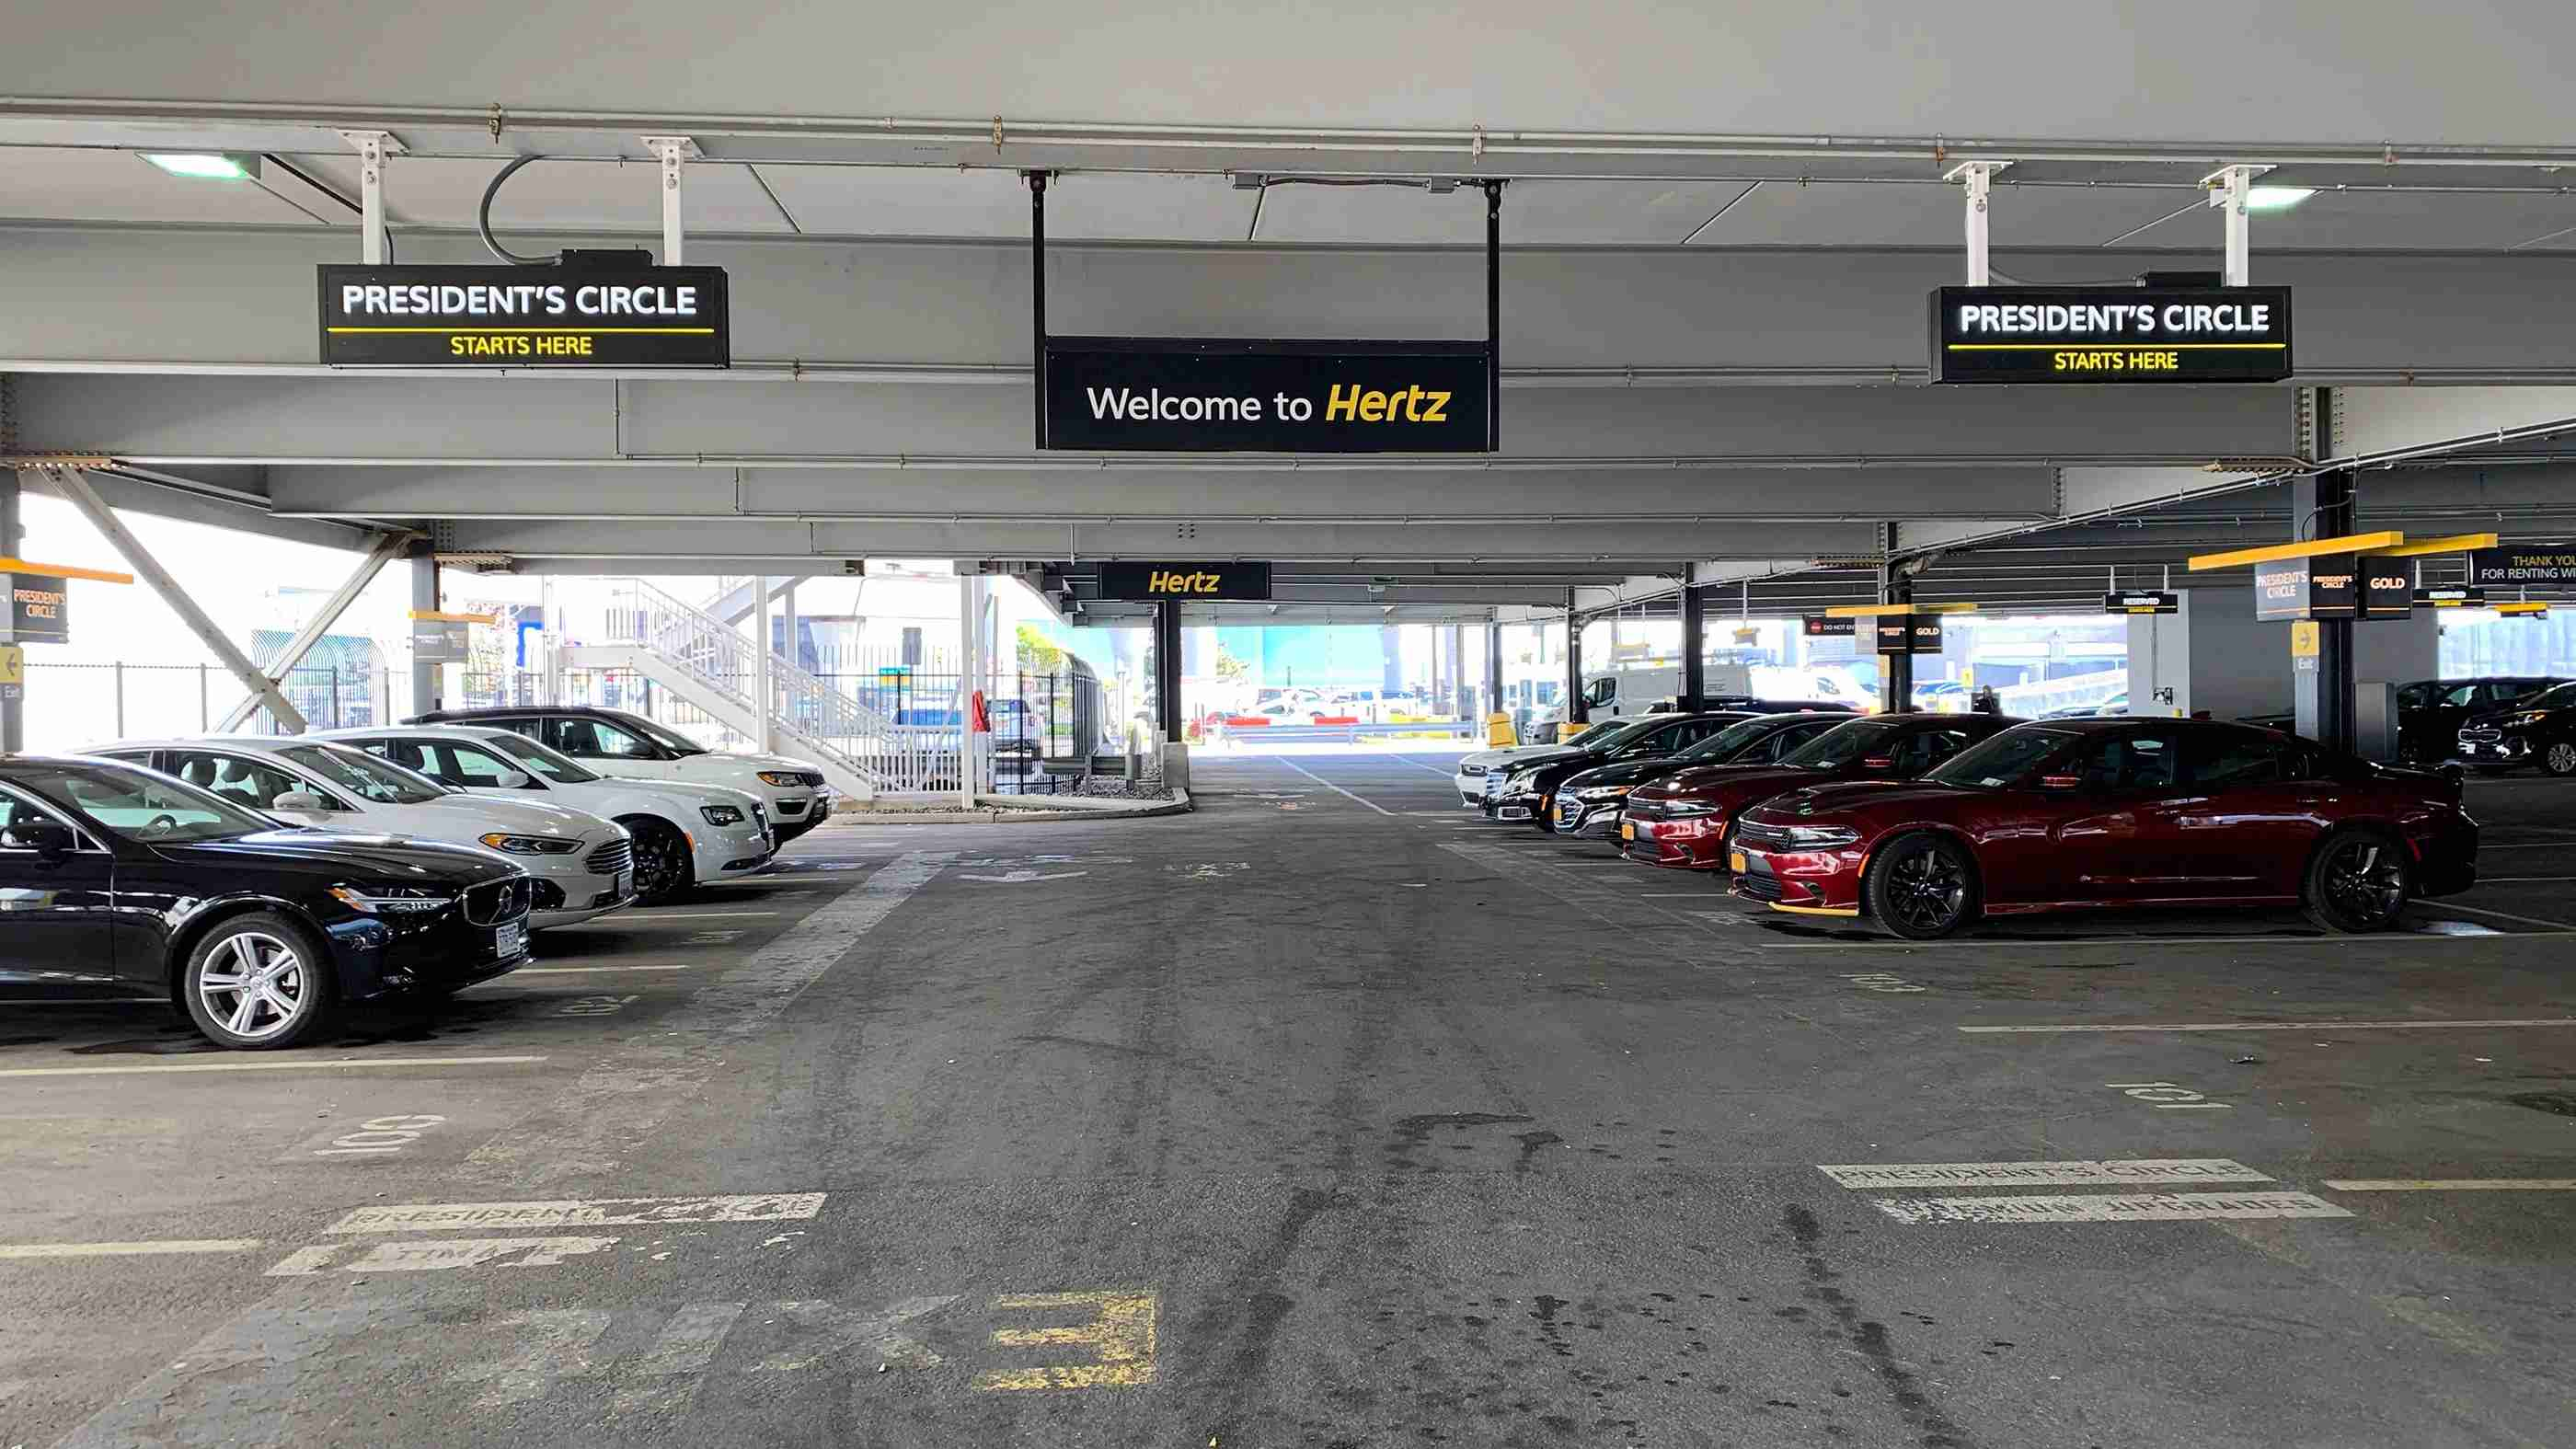 hertz-presidents-circle-garage-car-rental-2019